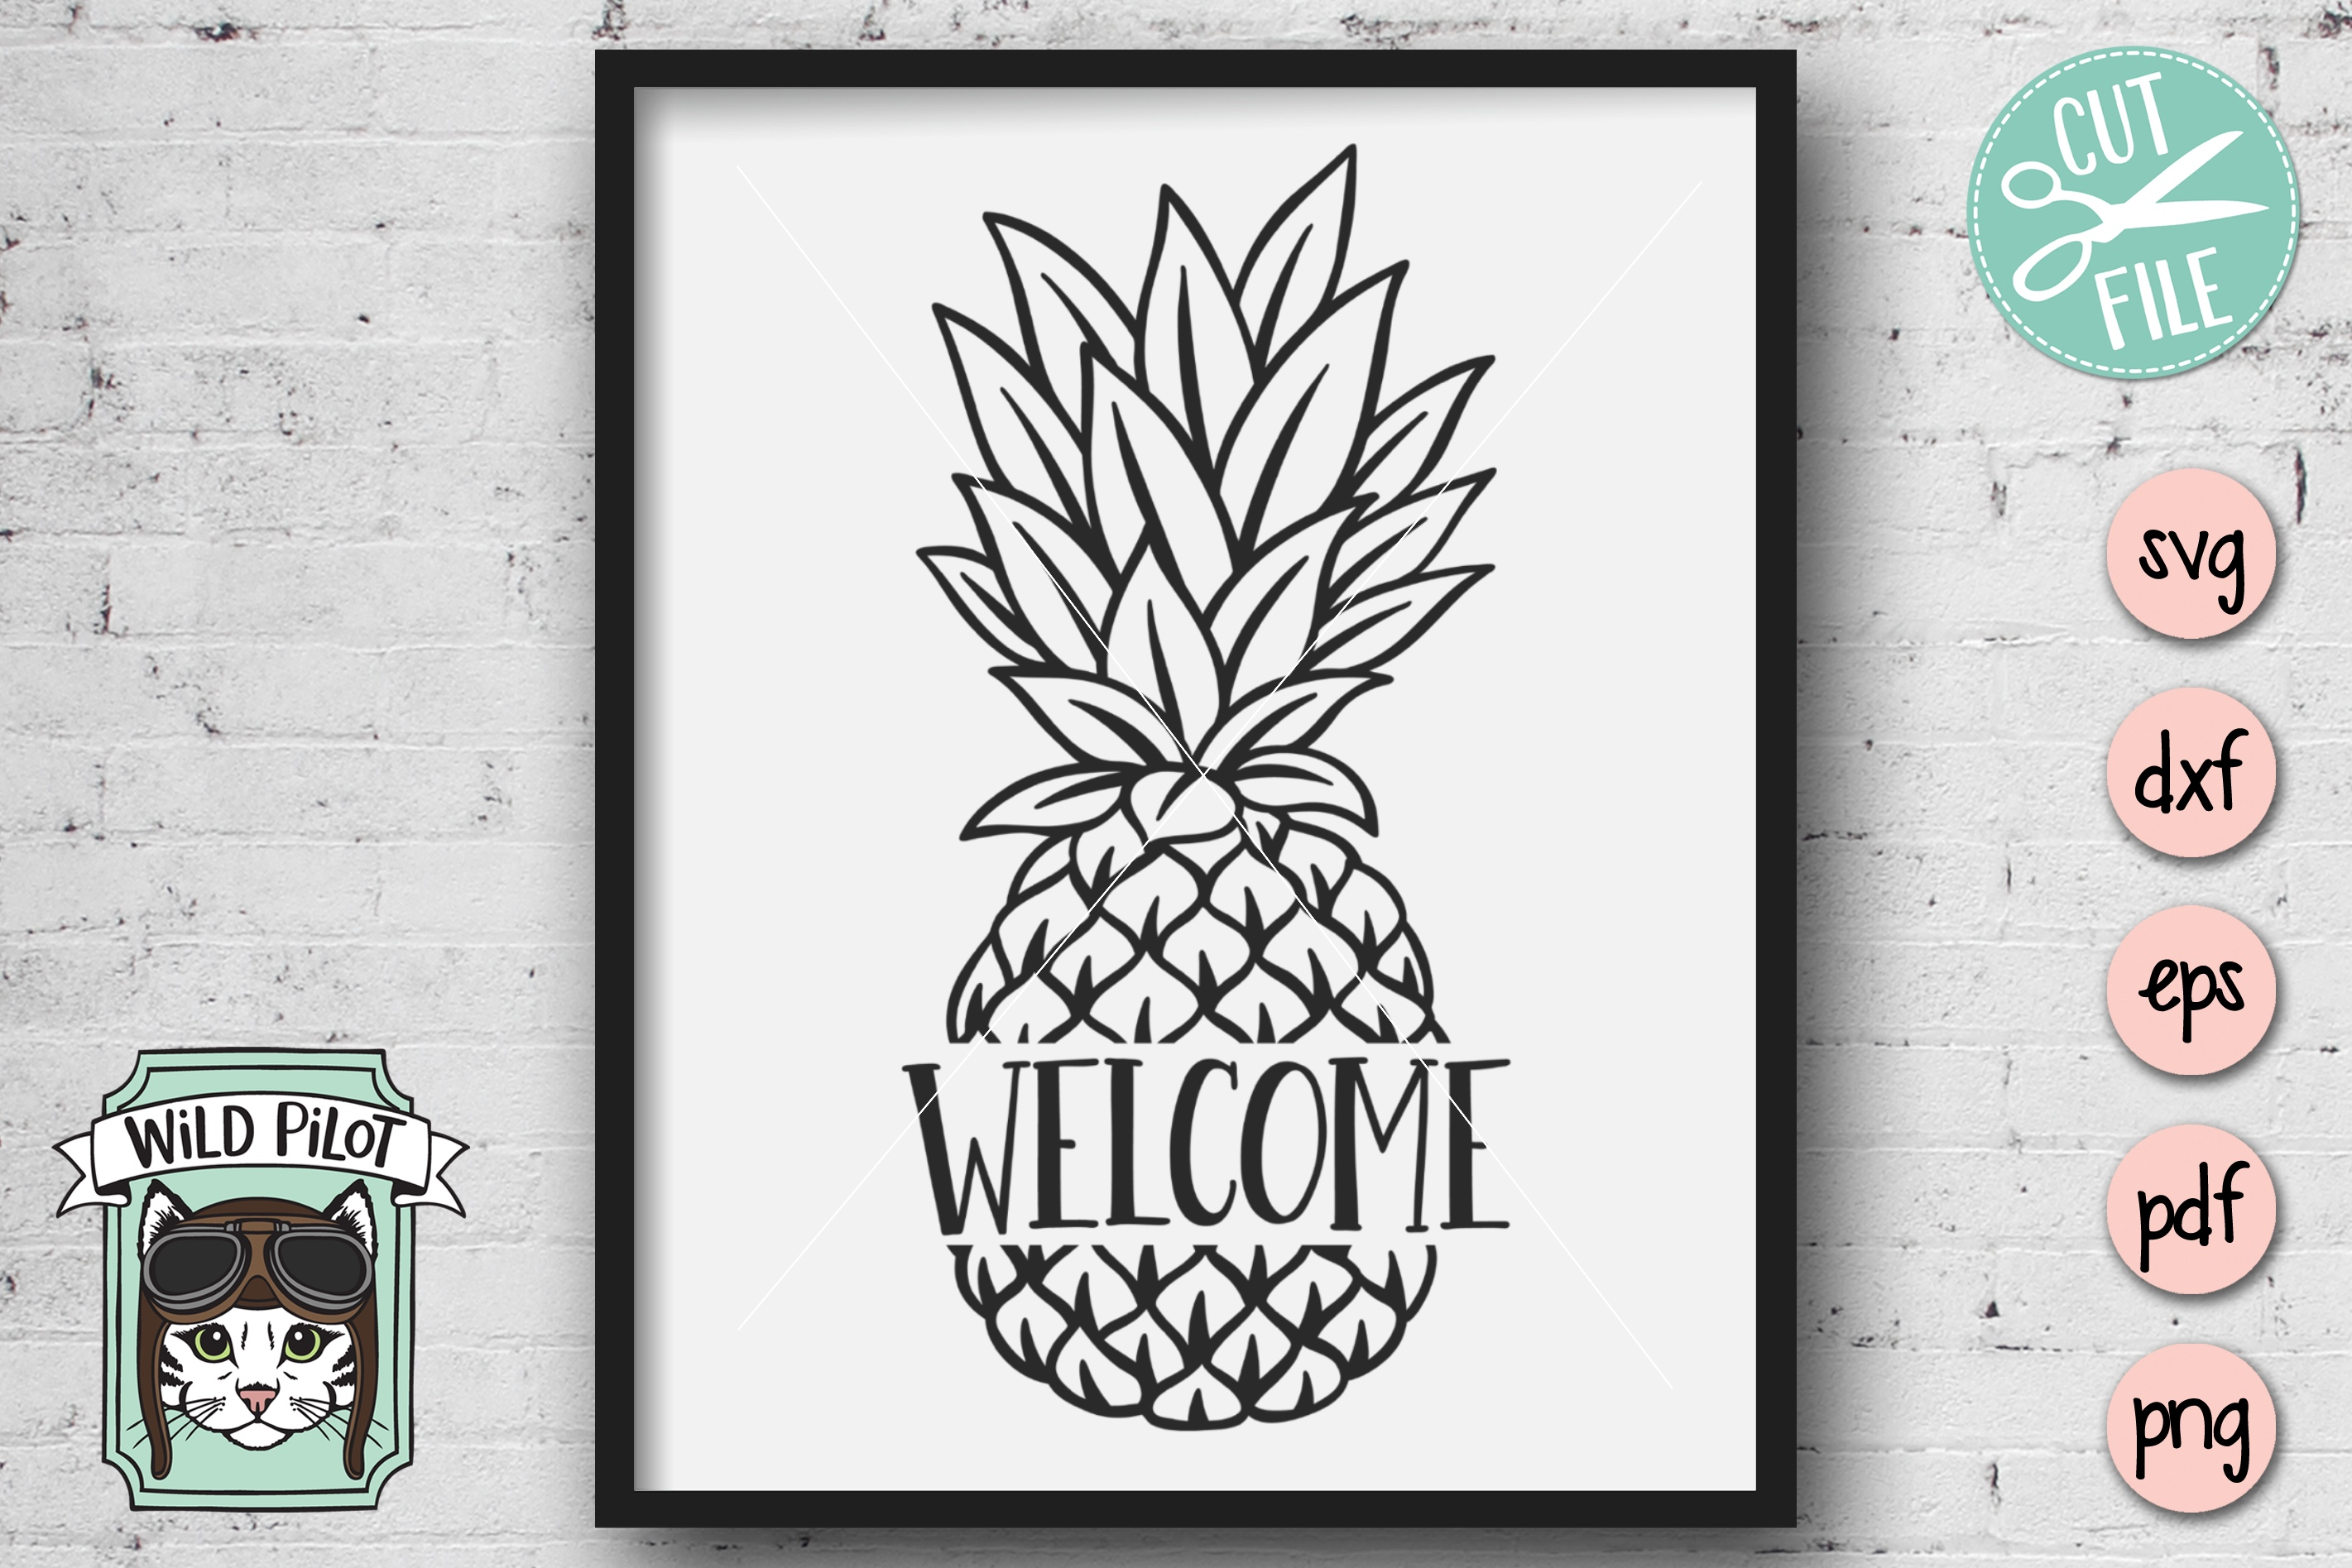 Pineapple SVG file, Pineapple Welcome Sign, Pineapple Cut example image 2